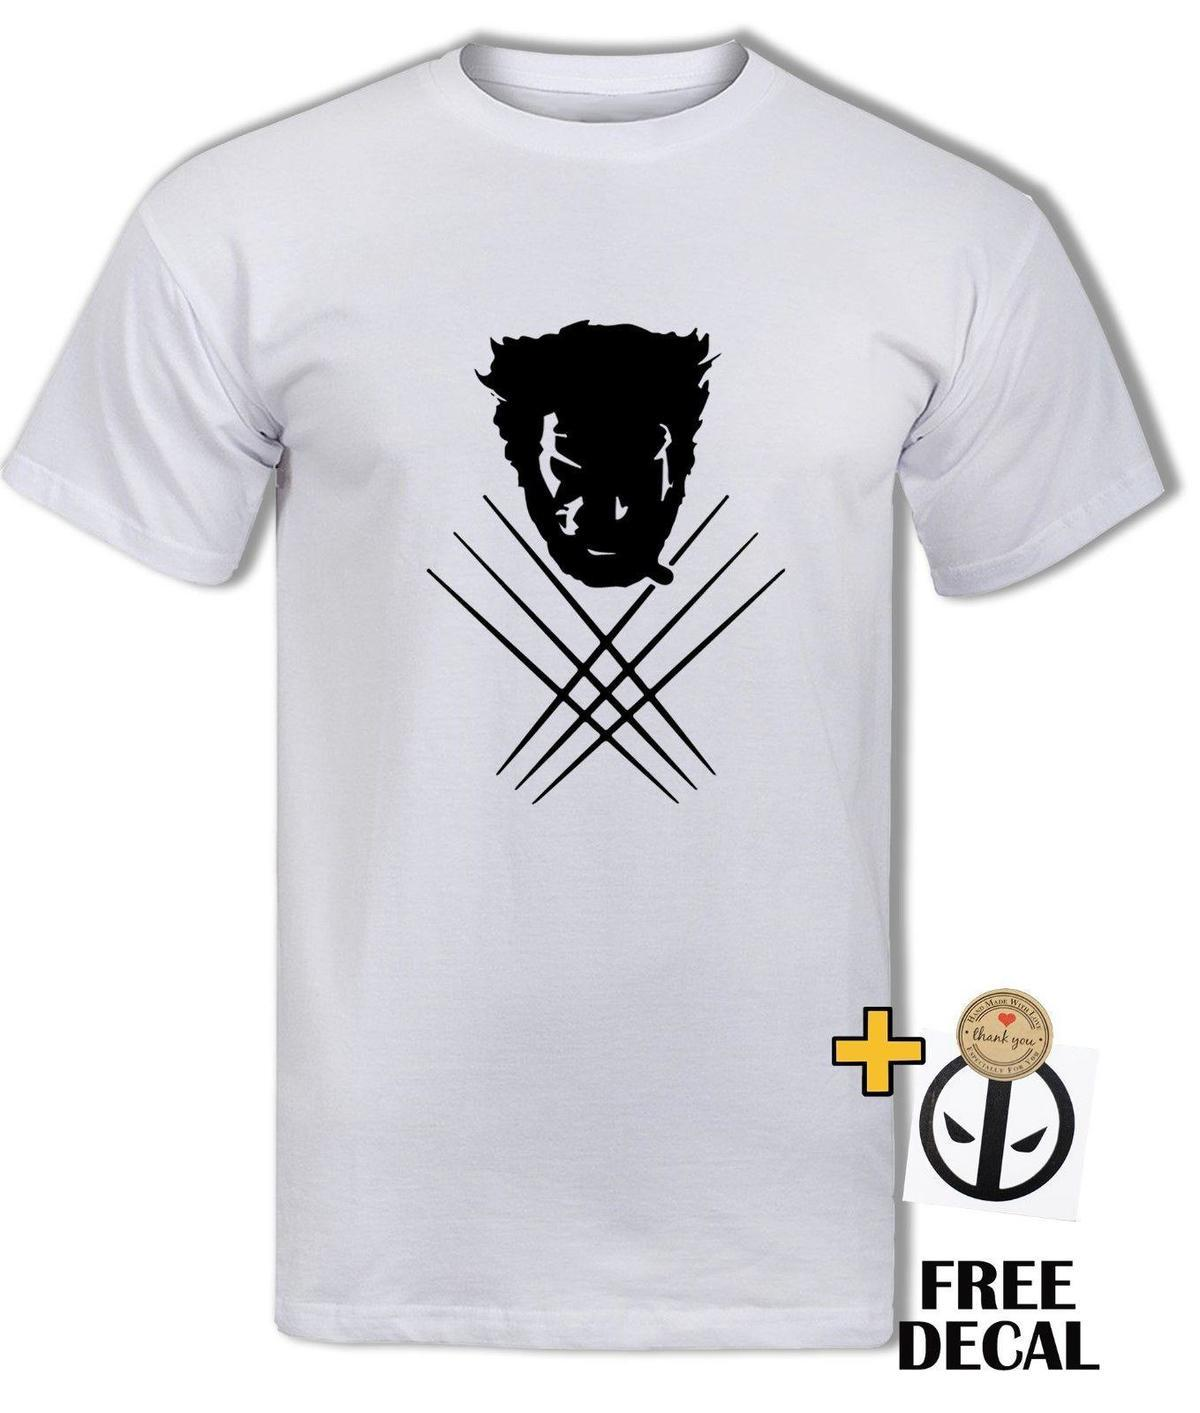 6ecaee4e0626 Wolverine Claws T Shirt, X Men, Super Hero T Shirt, Simple Design Logan, For  Men Biker T Shirts Make Your Own T Shirts From Linnan08, $14.67| DHgate.Com